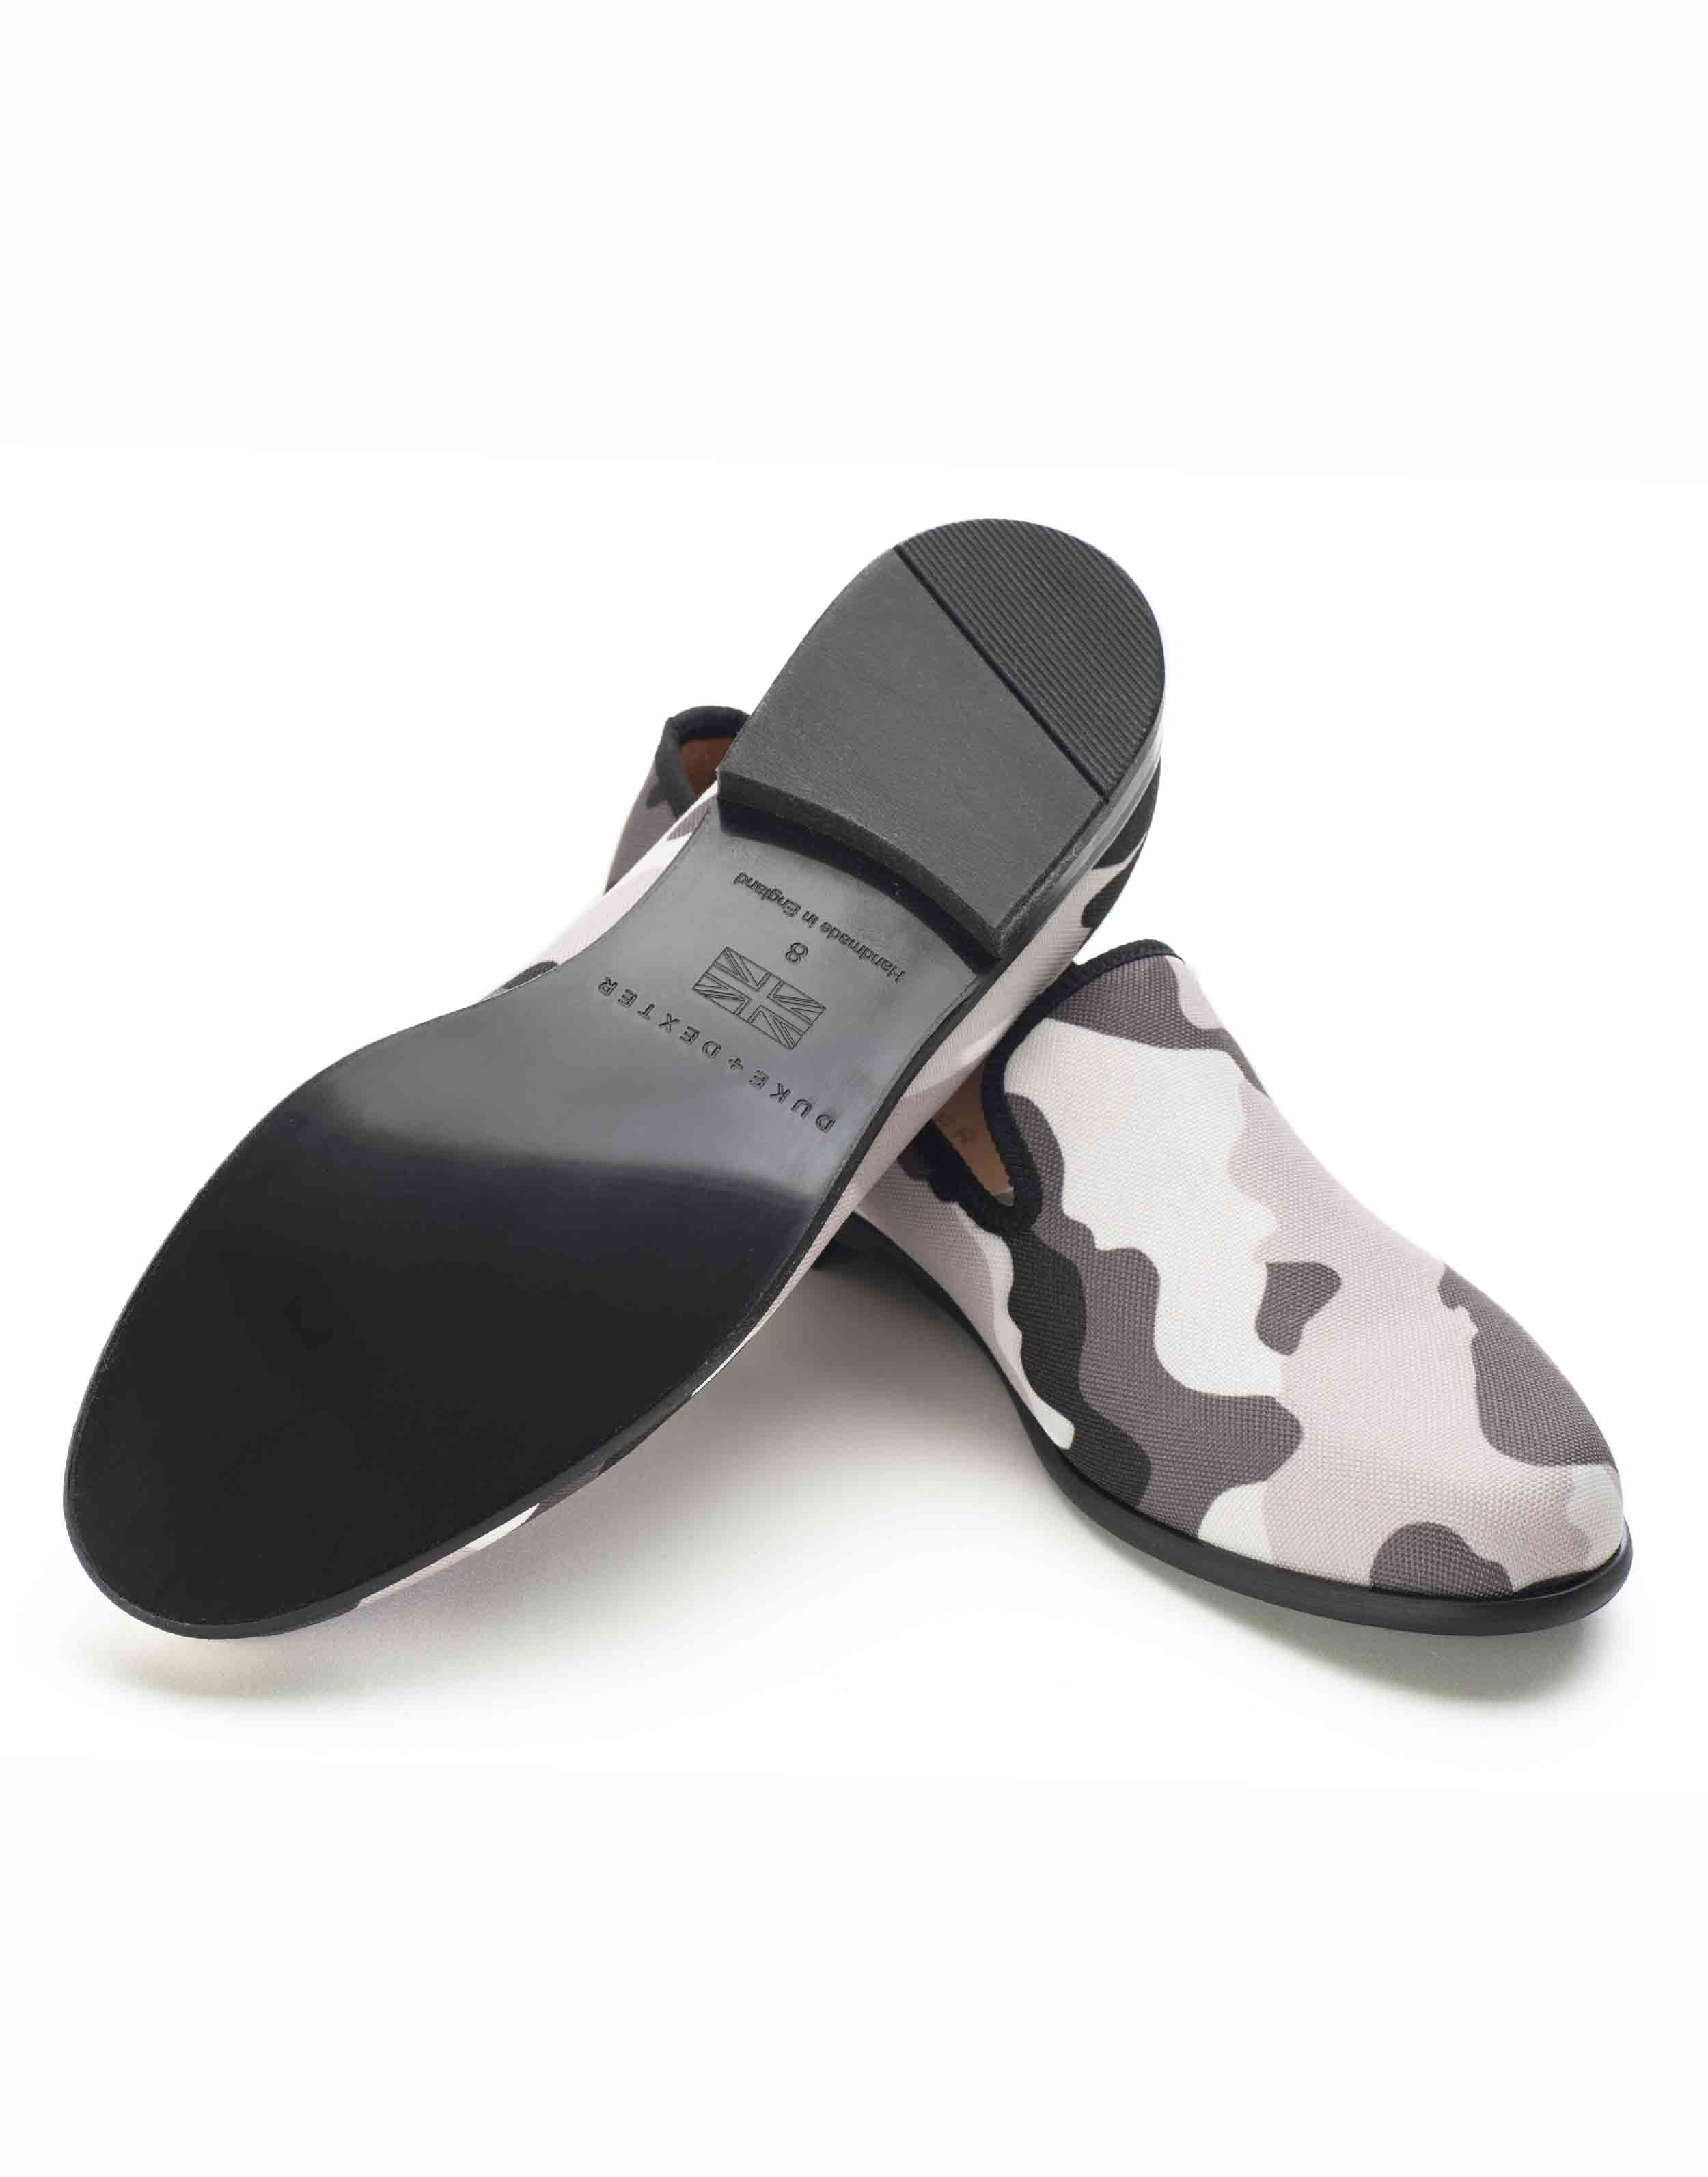 MONOCHROME CAMOUFLAGE LOAFERS3